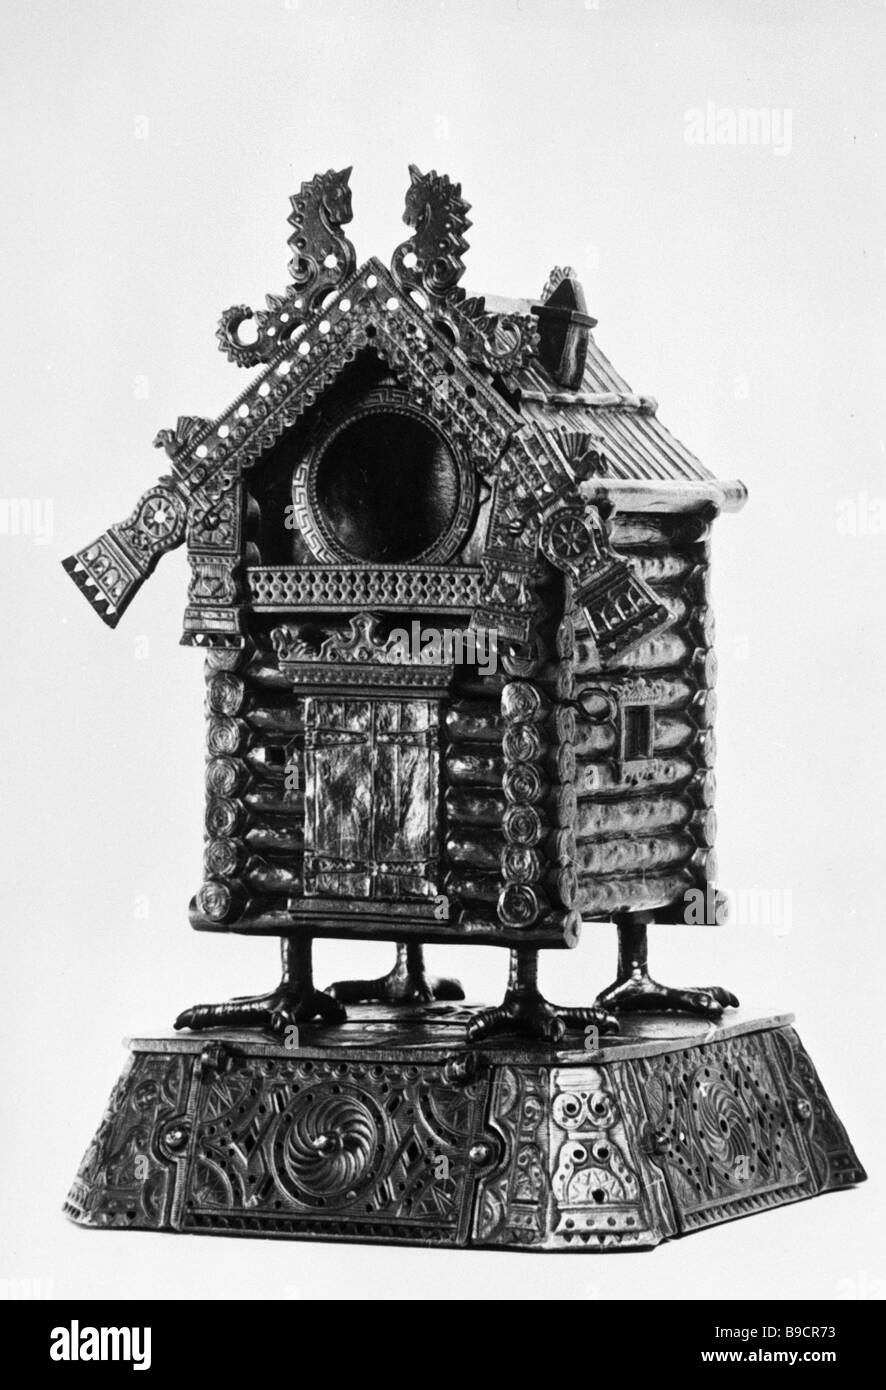 Chicken legged house from Russian folk fairy tales Kasli Museum of Iron Casting - Stock Image